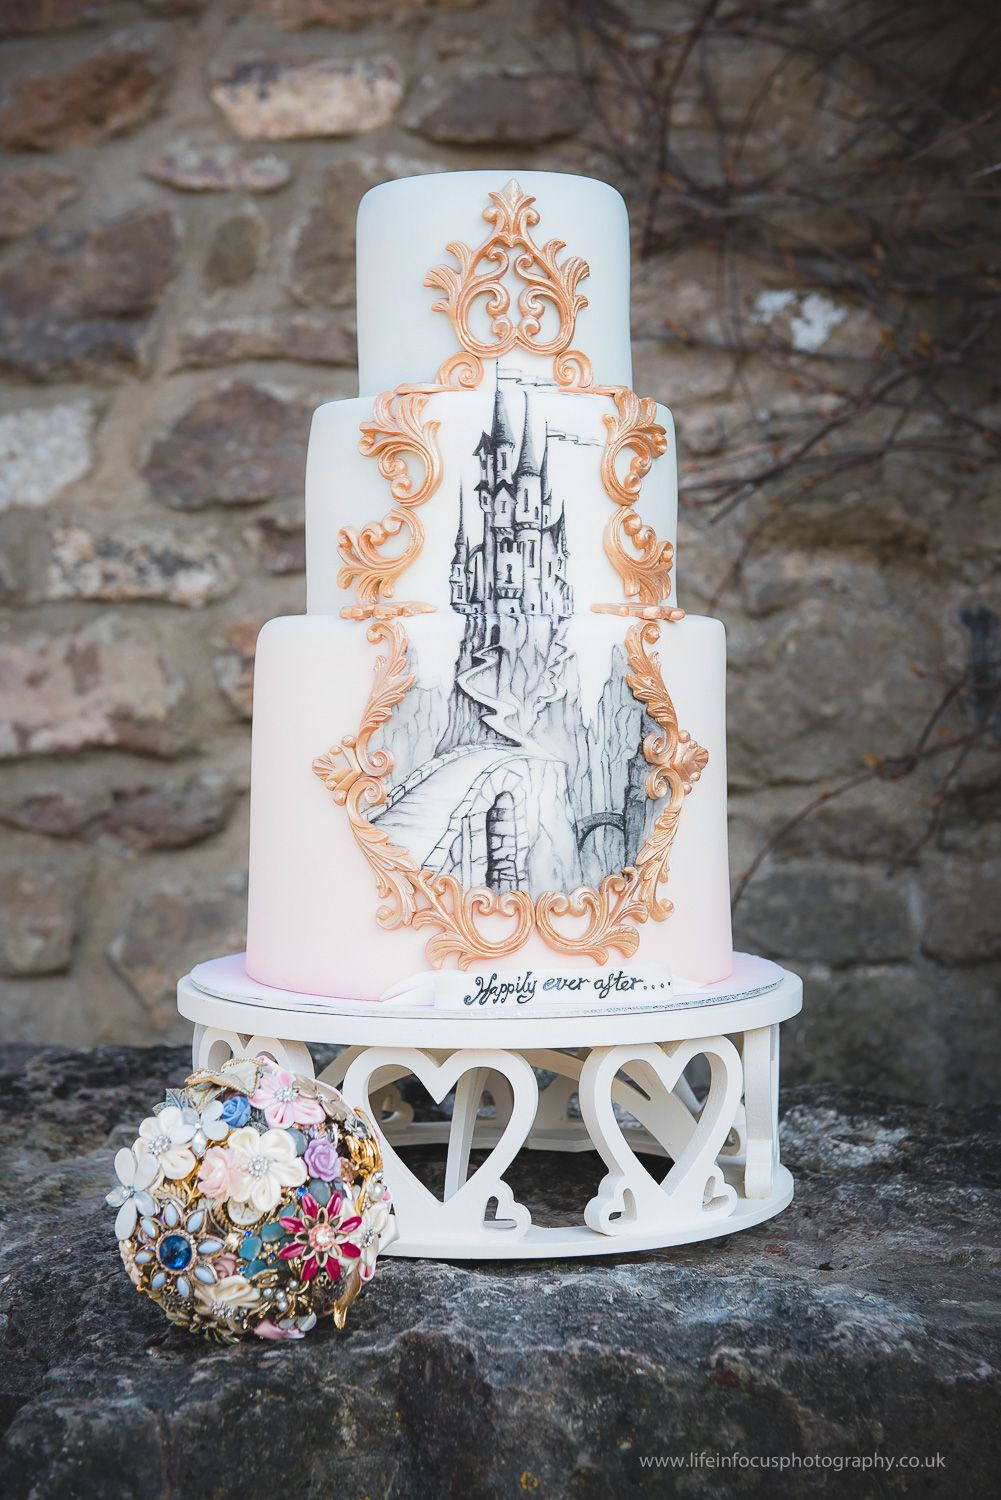 Fairytale castle wedding cake handpainted design with gold detail